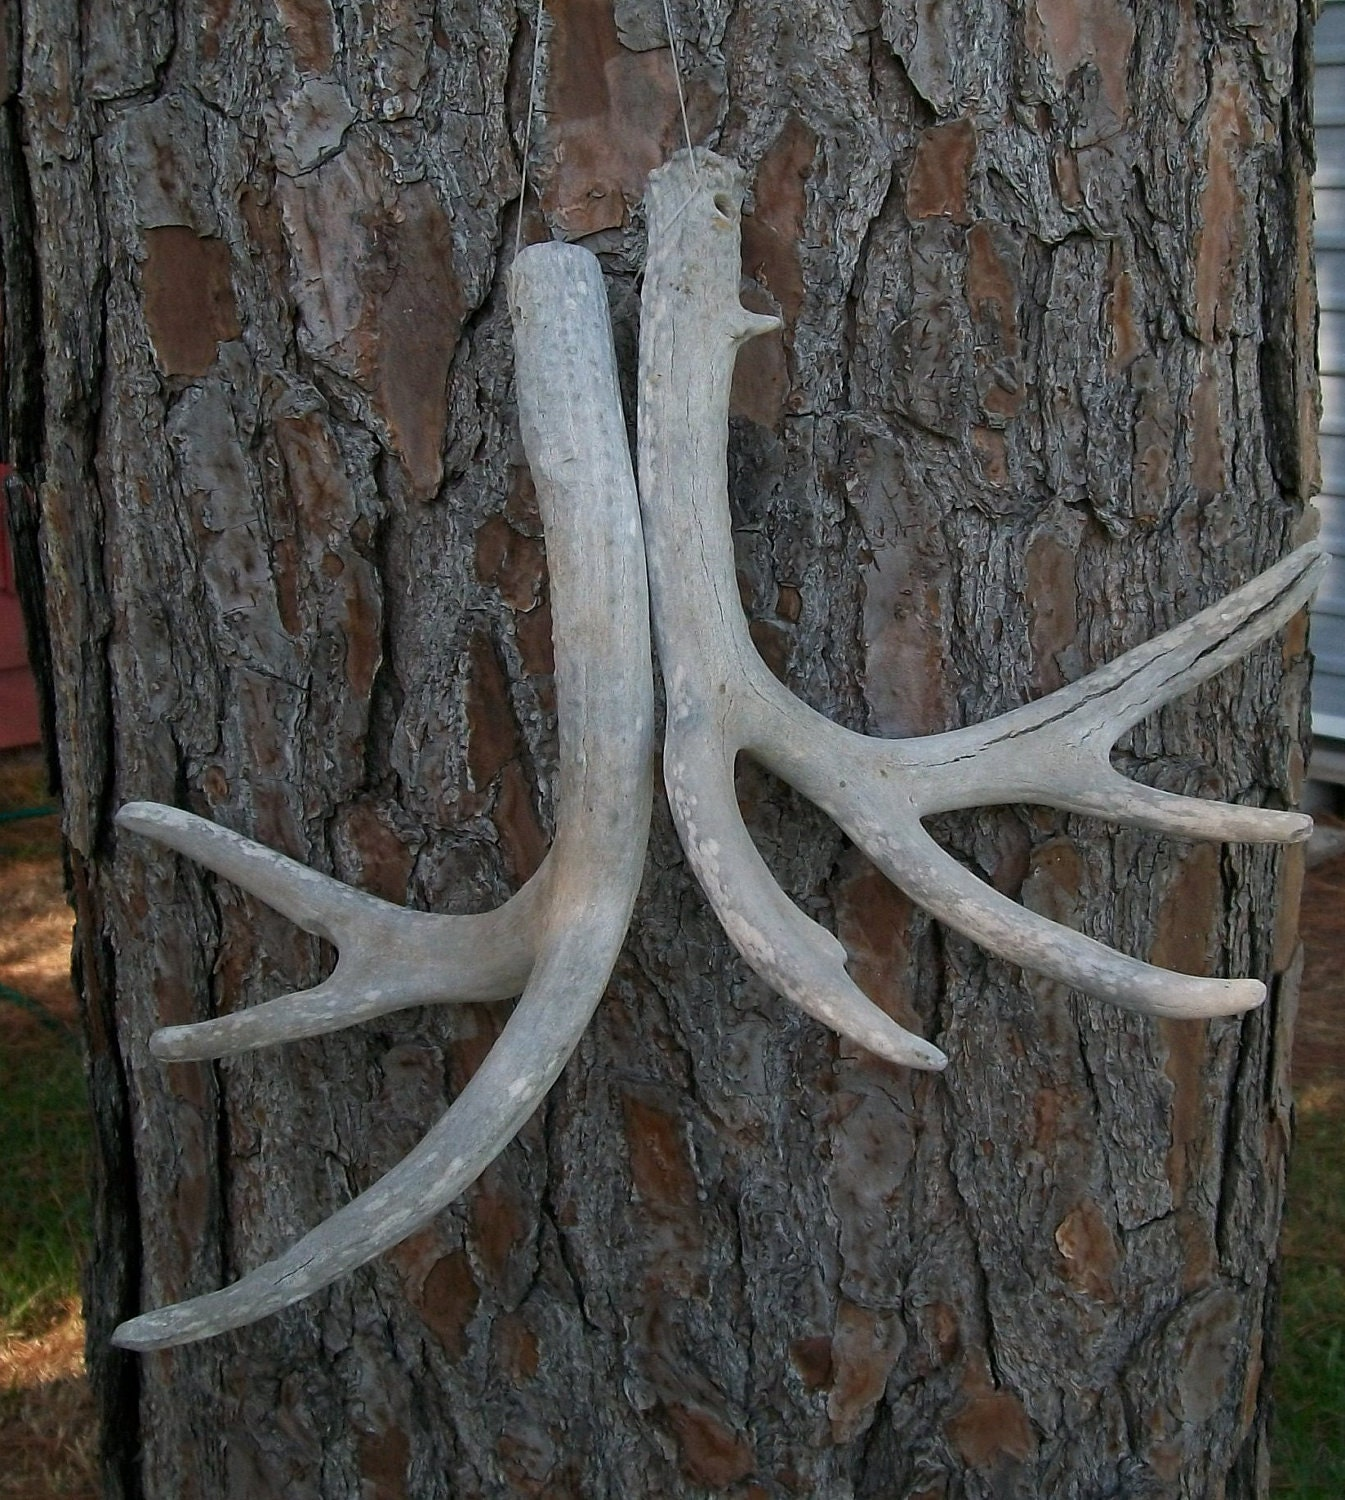 Deer Antlers 7 points Antler rack Texas wildlife hunt souvenir hunting trophy Texan Hunter  rustic decor for Hunter retro Texana Lot M-6